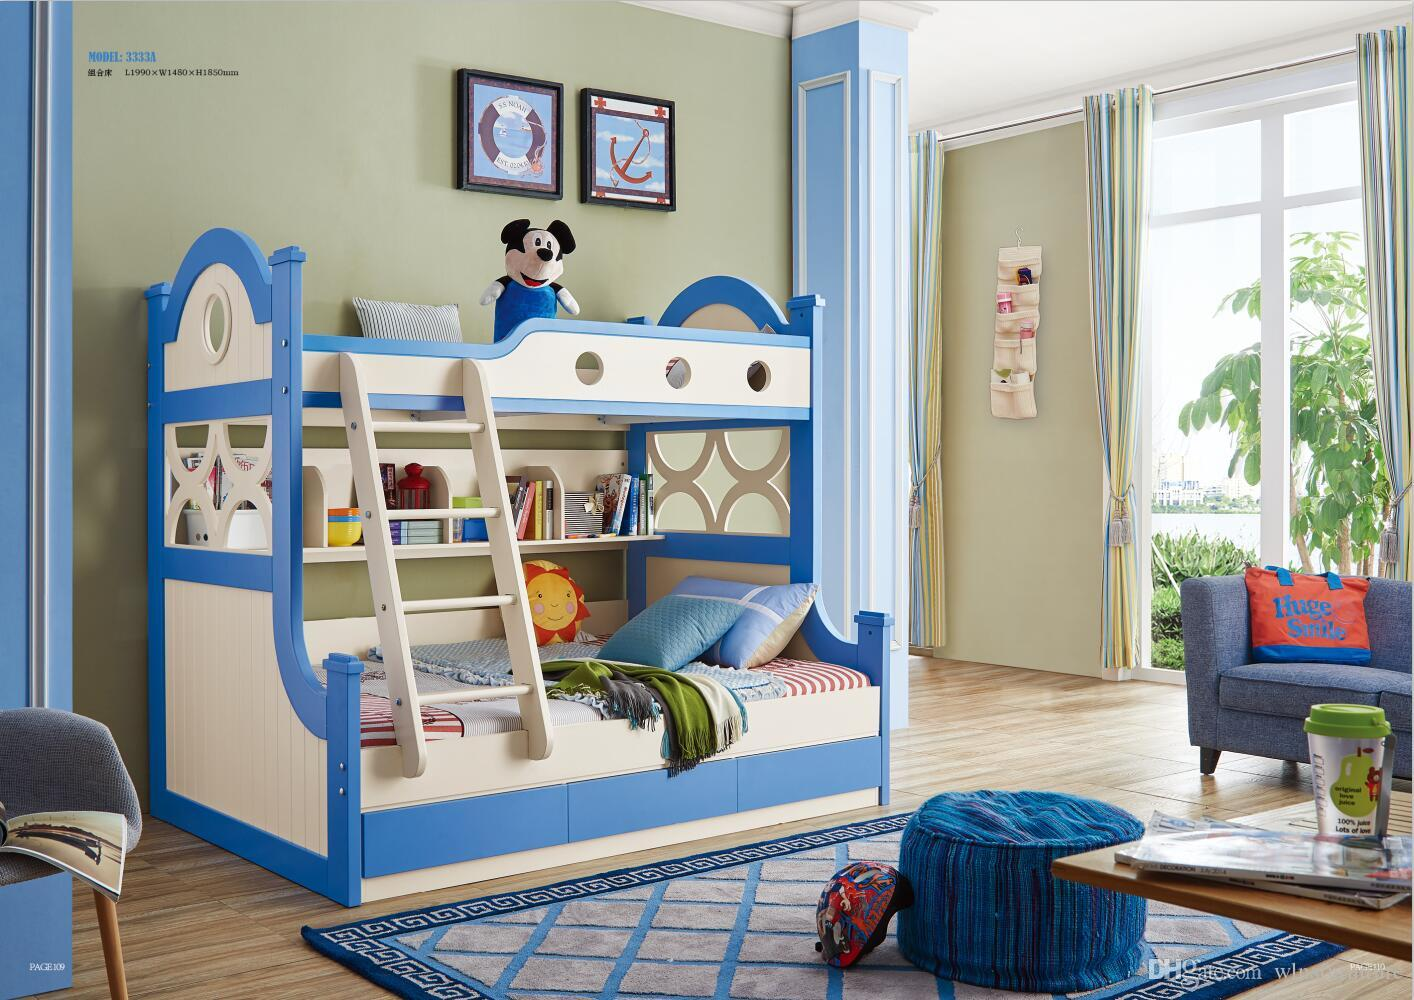 2019 Ash Wood Children Bedroom Furniture Solid Wood Children Bed With  Storage Cabinet Stairs Drawers Bunk Bed From Wlnsfurniture, $587.94 |  DHgate.Com